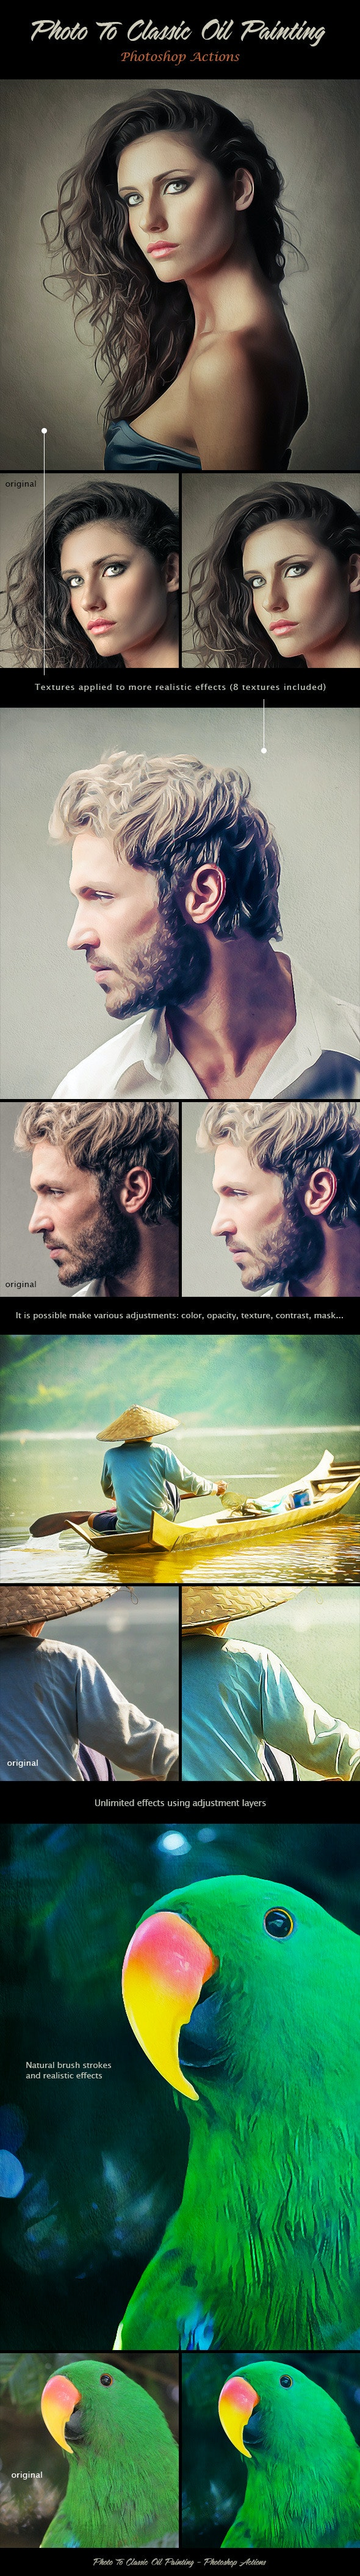 Photo To Classic Oil Painting - Photo Effects Actions